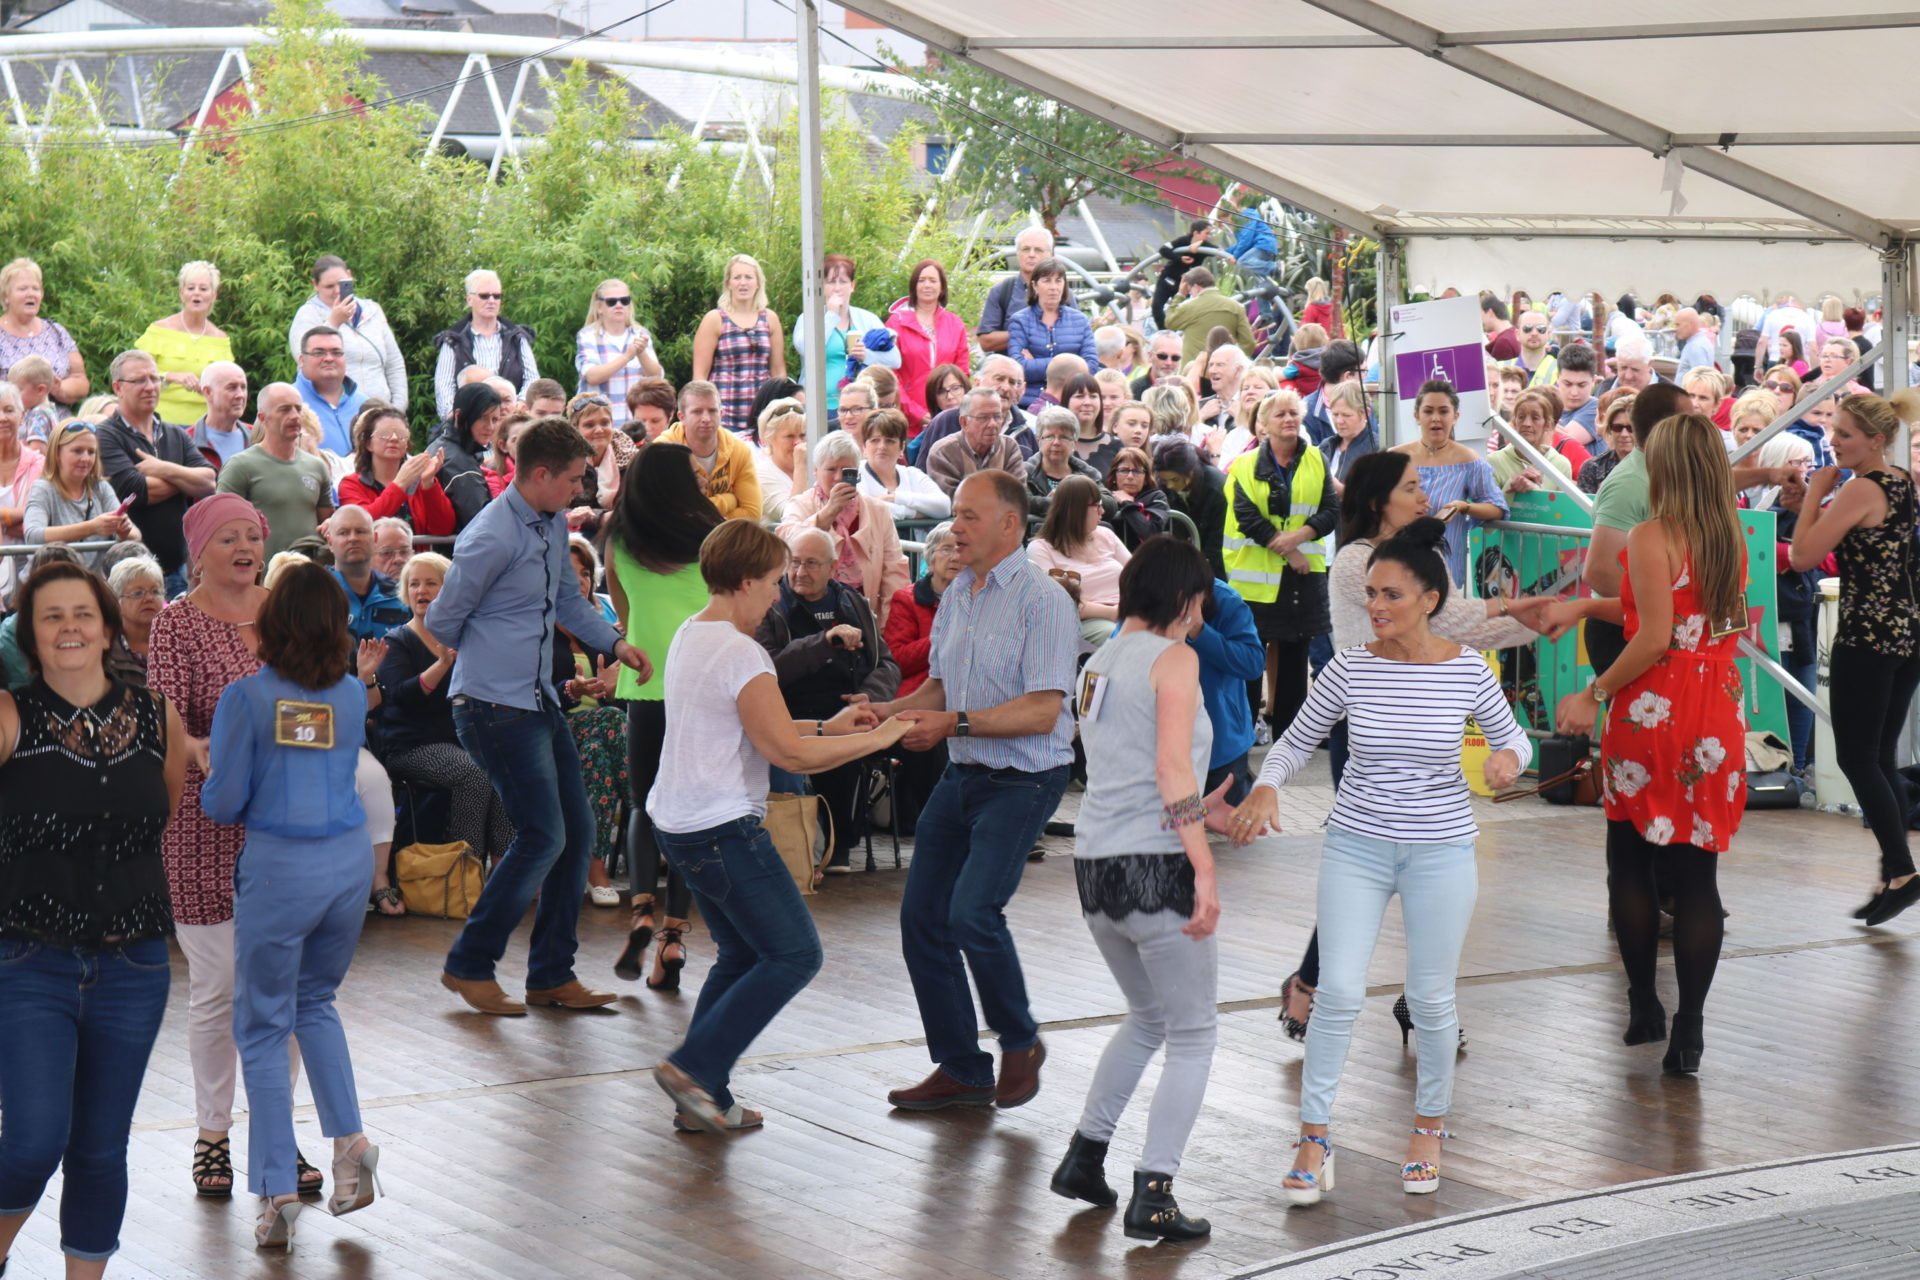 Large Crowd Attends Jive Live Event Fermanagh Amp Omagh